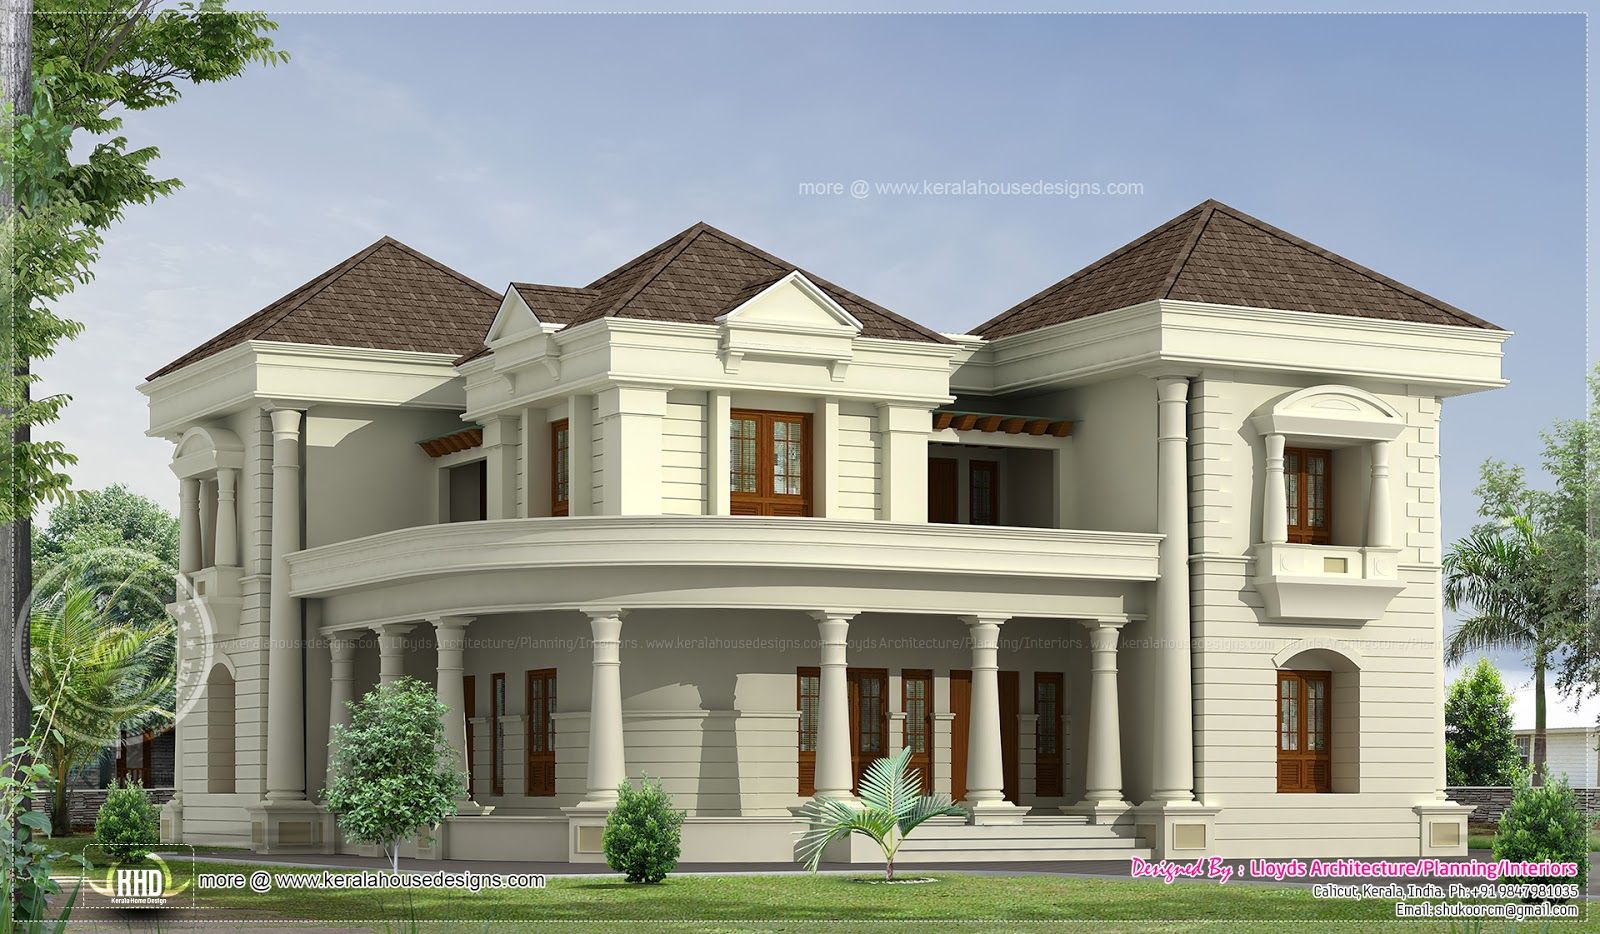 Modern bungalows bedroom luxurious bungalow floor plan for Bungalow home designs plans